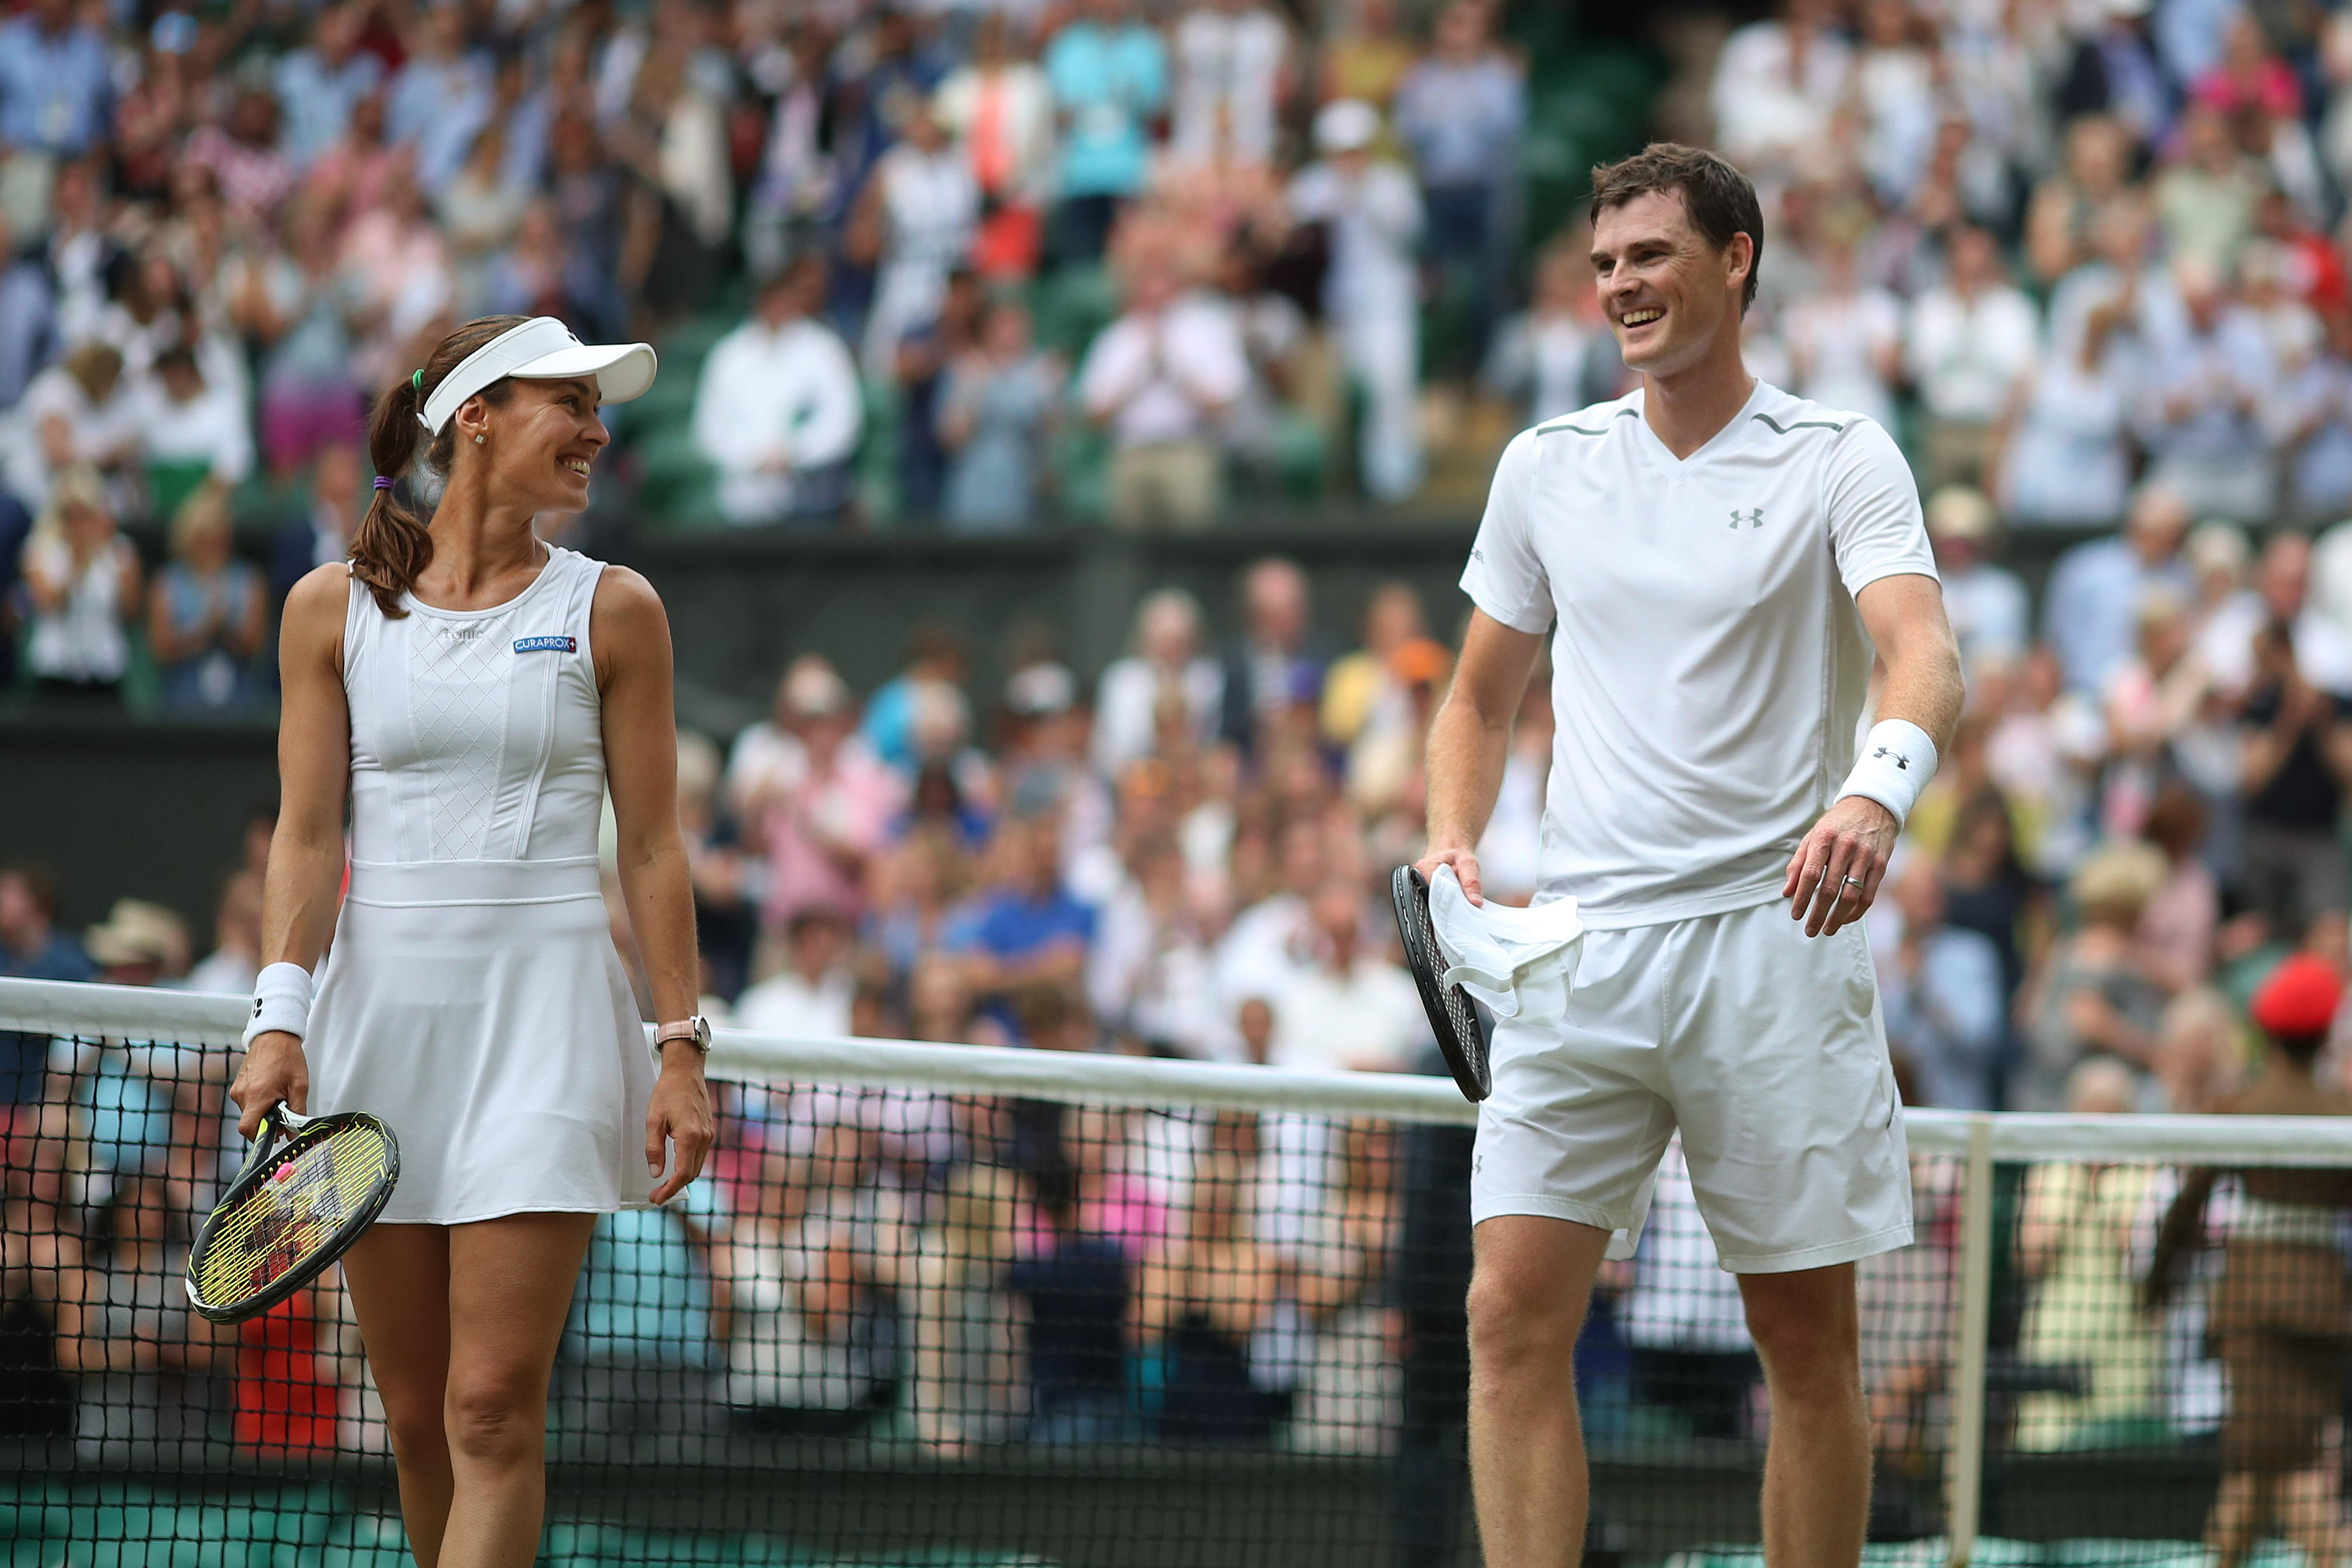 Jamie Murray and Martina Hingis of Switzerland celebrate victory over Henri Kontinen of Finland and Heather Watson of Great Britain in the Mixed Doubles Final last year